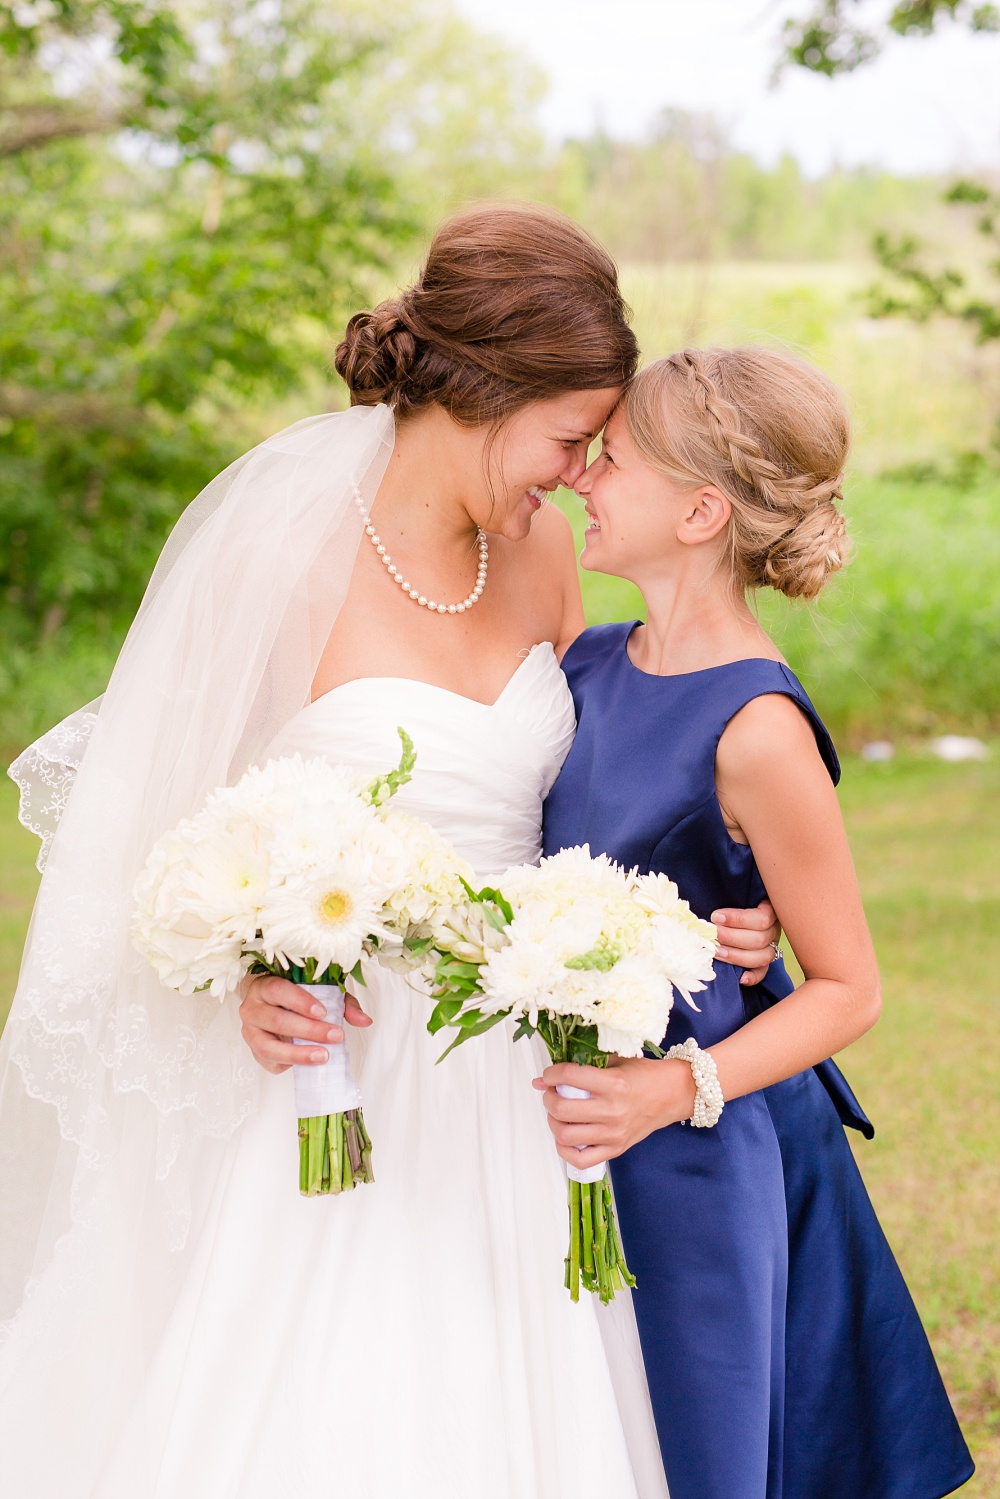 Wolf Lake, MN Country Styled Wedding, White Dress, Blue Suite | Photographed by Amber Langerud Photography | Bride & her Niece bridesmaid